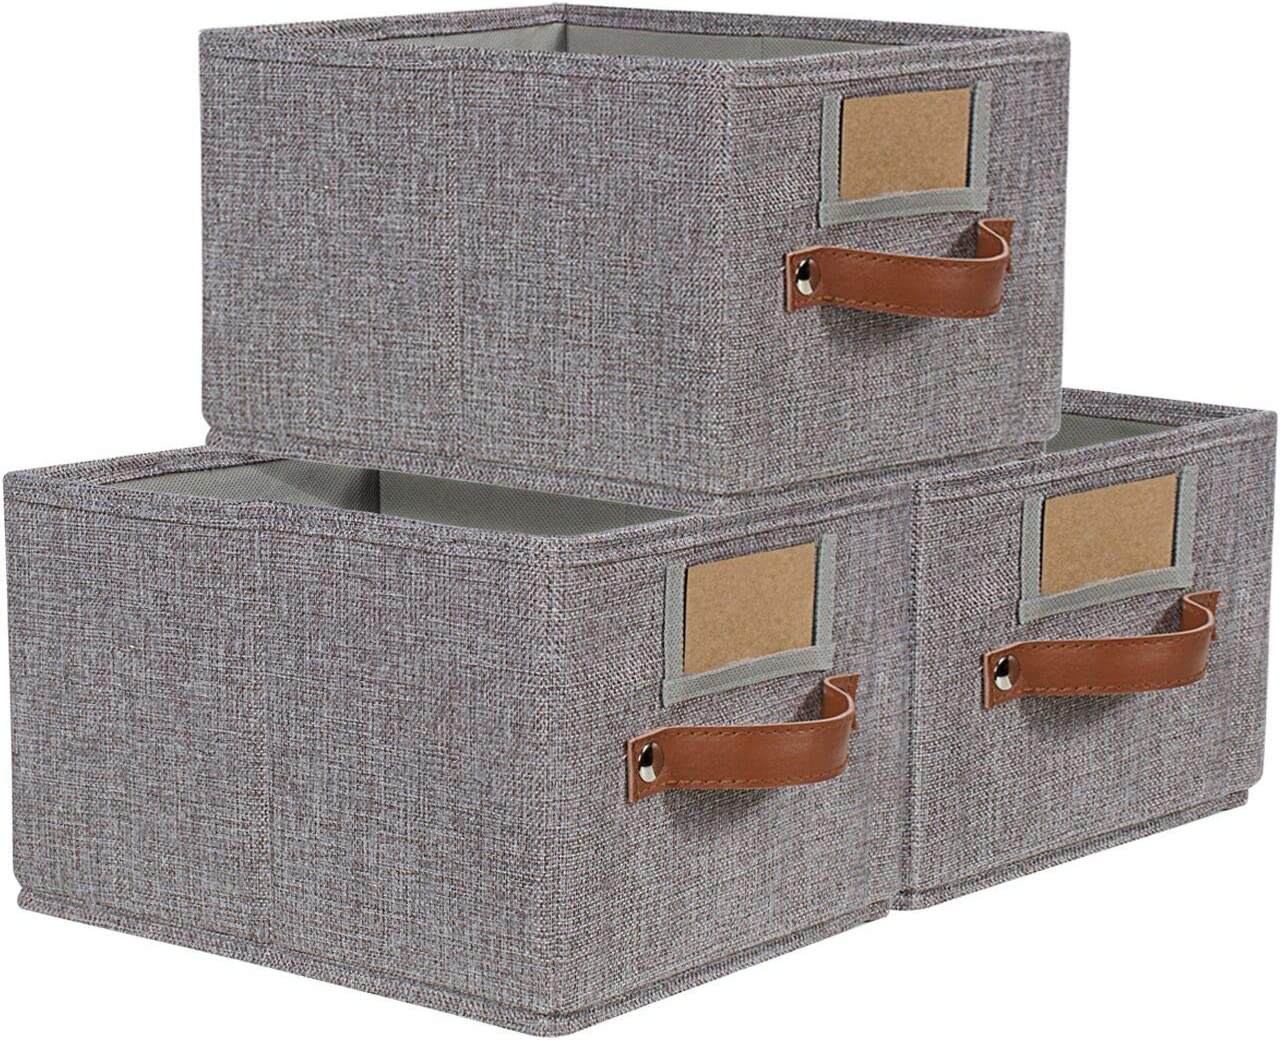 Foldable Storage Baskets for Shelves Set of 3, Fabric Storage Bins with Labels, Decorative Cloth Organizer Storage Boxes, Rectangle Closet Bedroom Drawers Organizers for Home|Office 11.4x8.7x6.7""